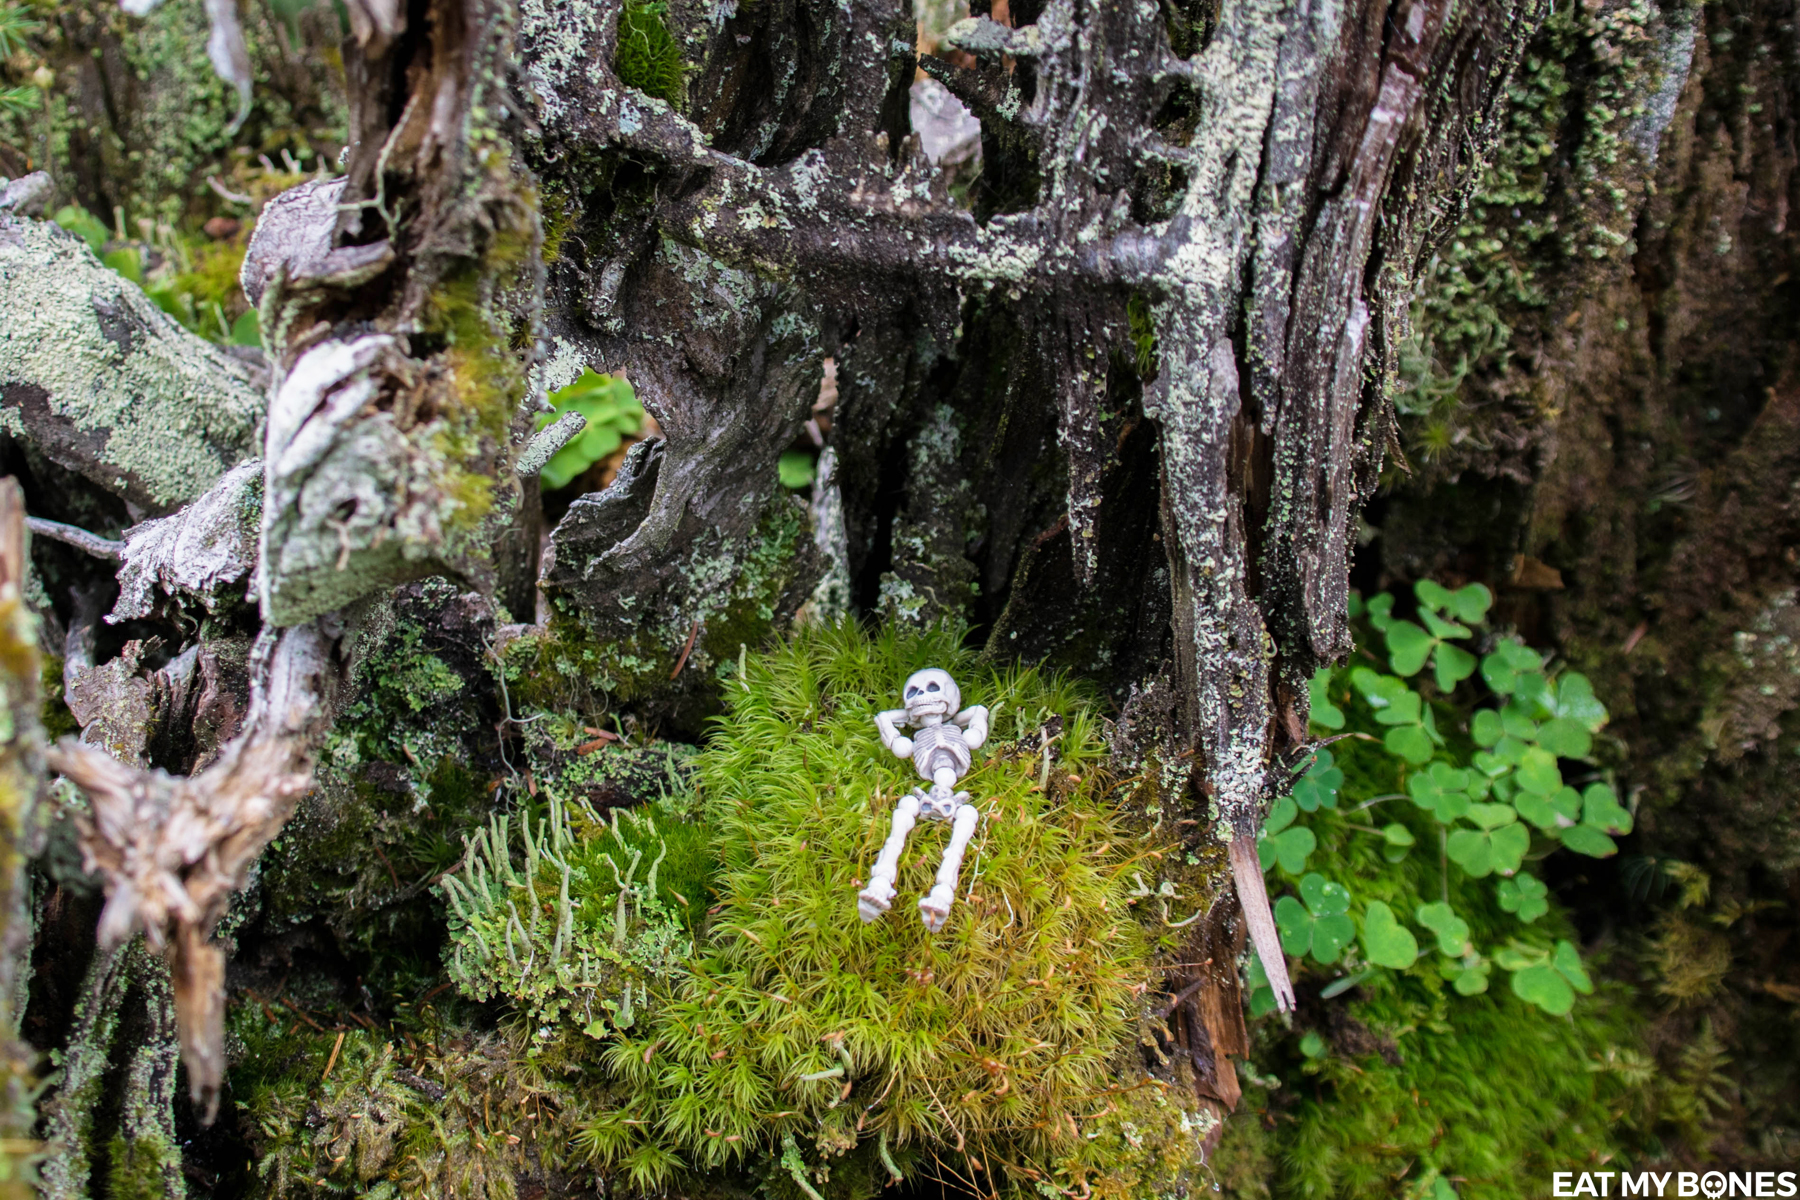 Alps walk - Pose Skeleton - Toy photography - Miniature - Eat my Bones